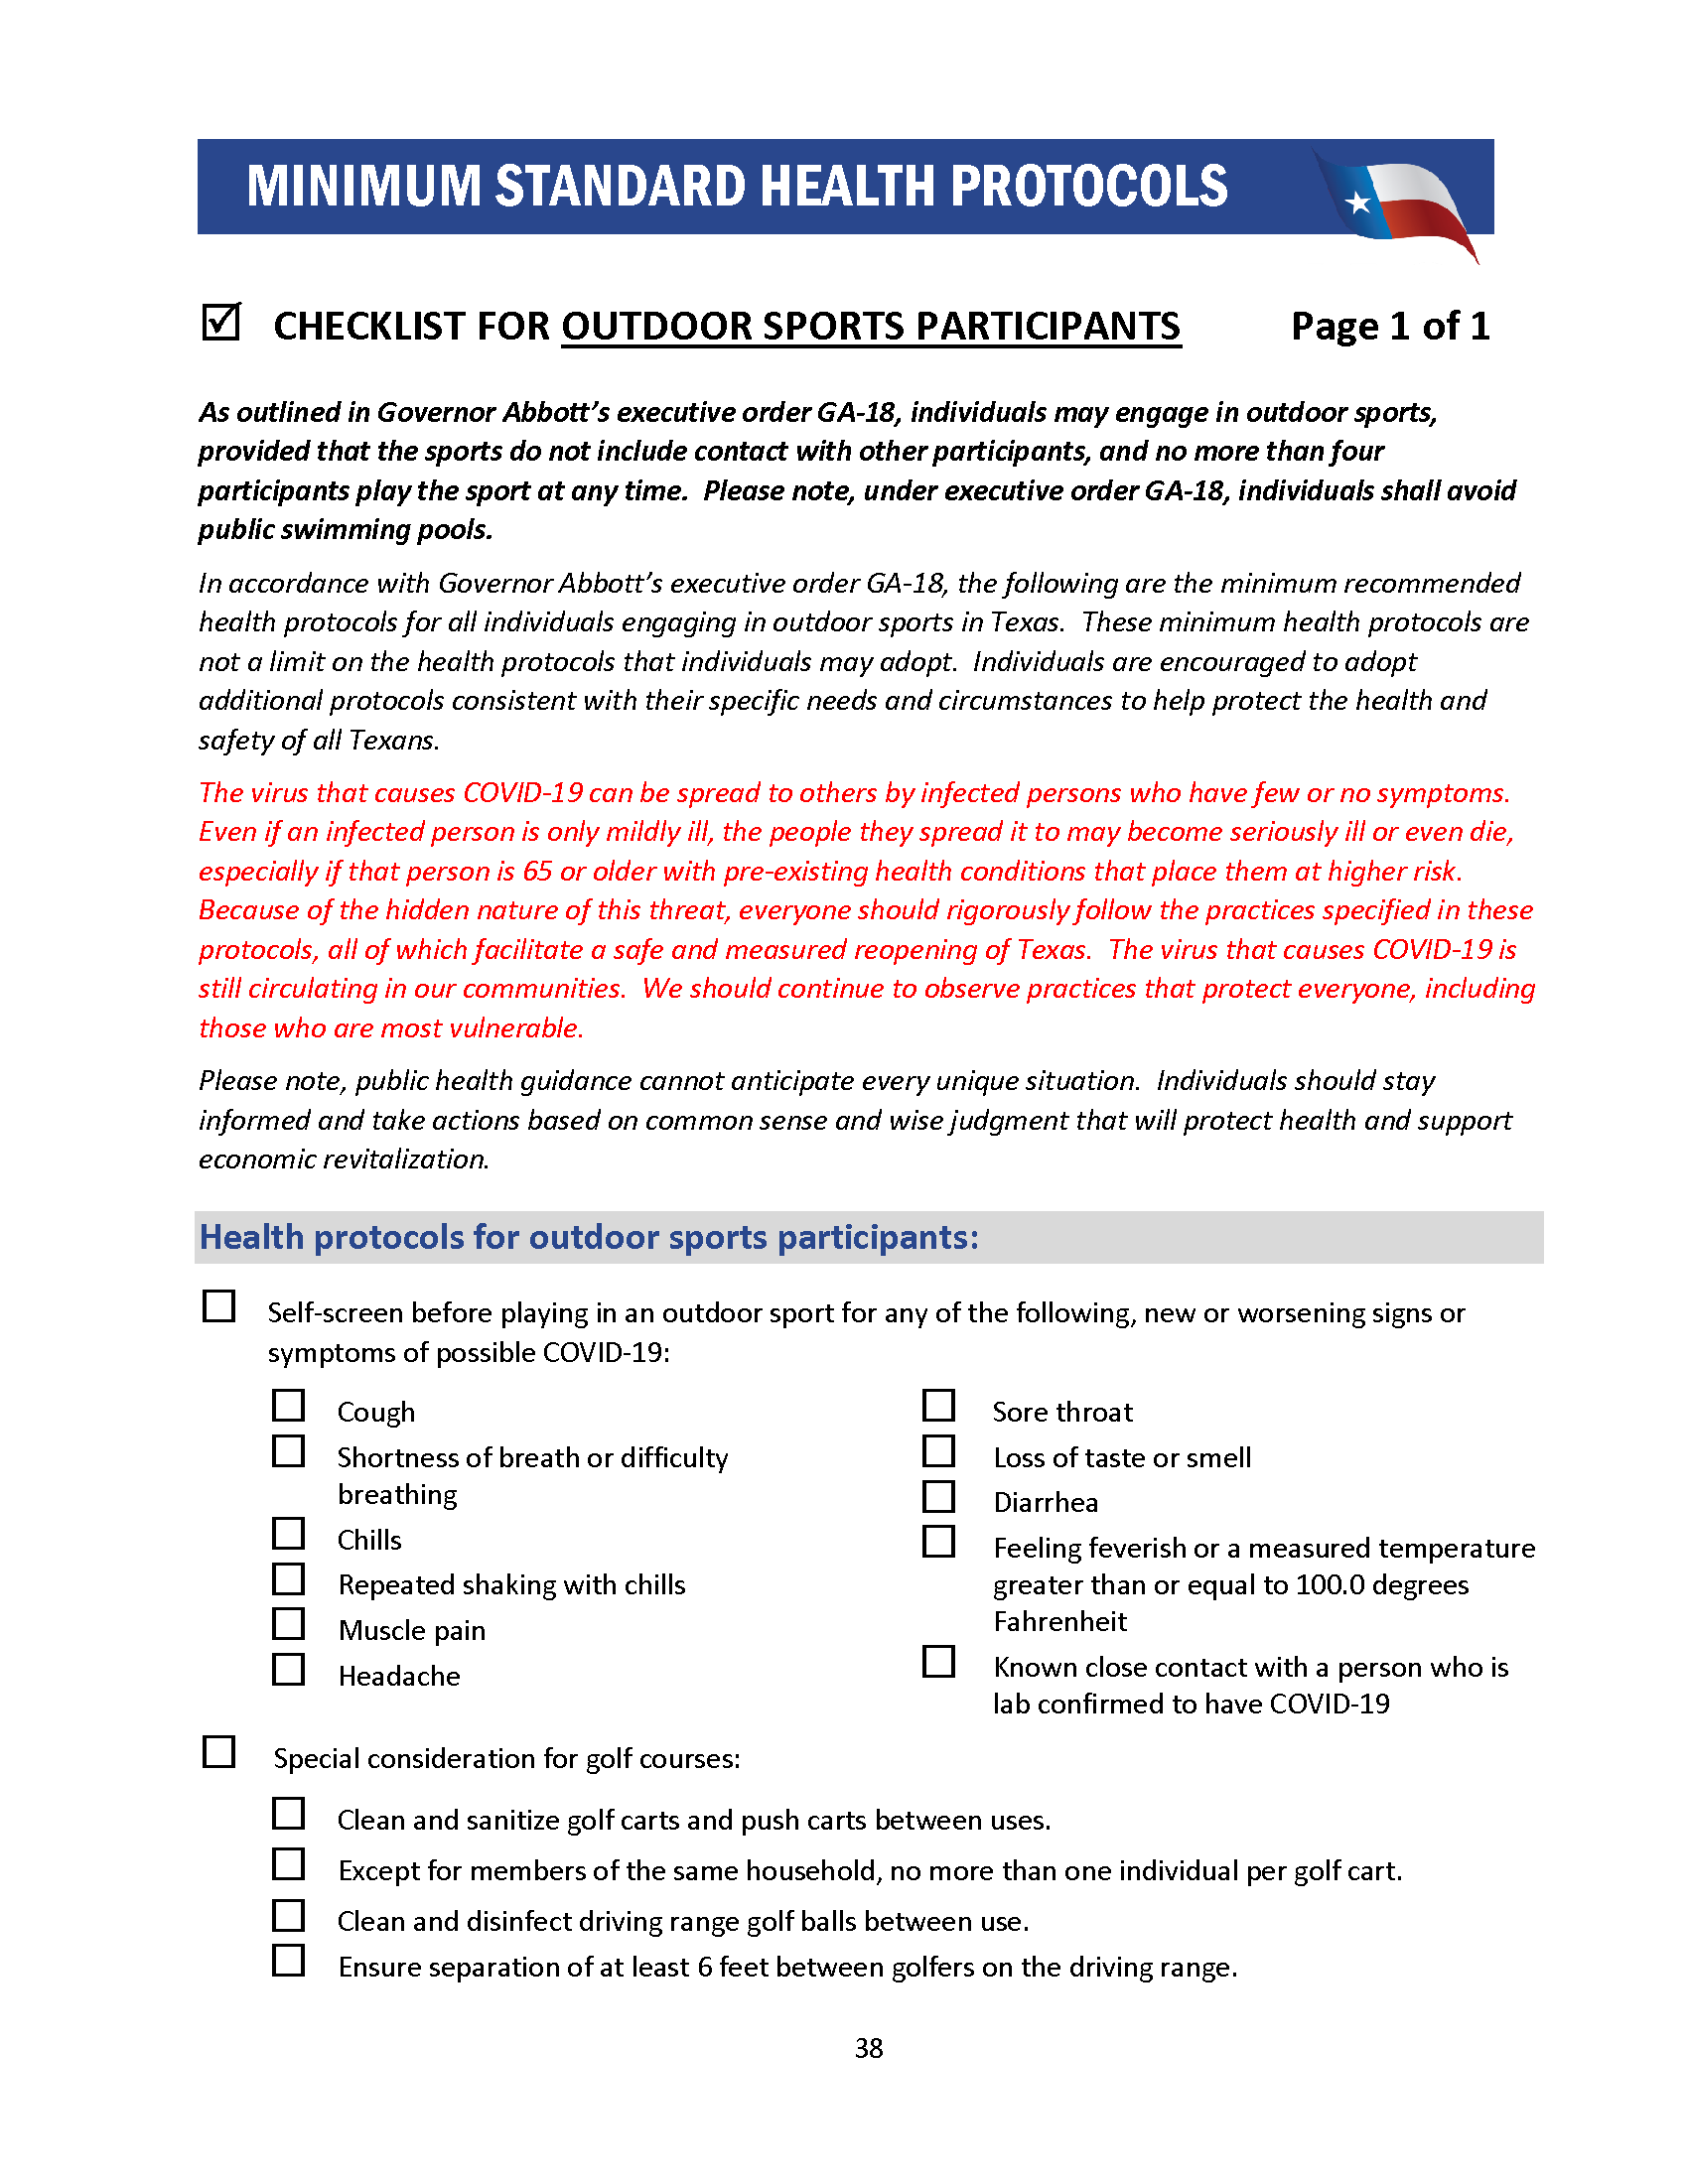 Checklist for Outdoor Sports Participants